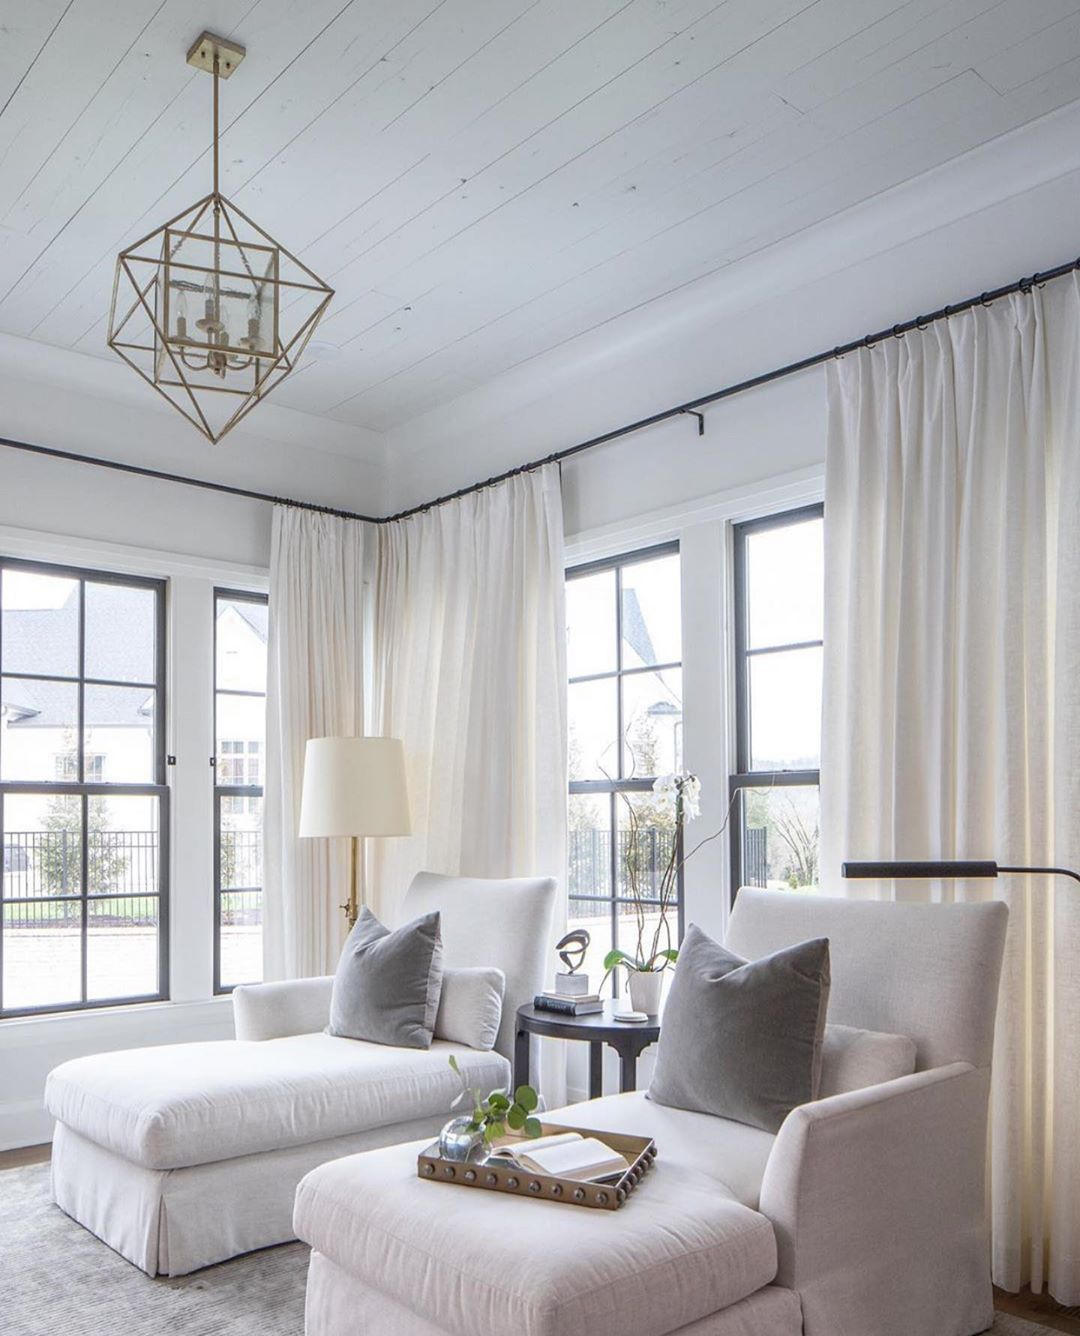 Shannon Sears Mcilwain On Instagram Perfect For A Friday Evening Design Juliecouchinteriors Kristen Mayf In 2020 Sitting Room Design Home Room Design #sears #living #room #curtains